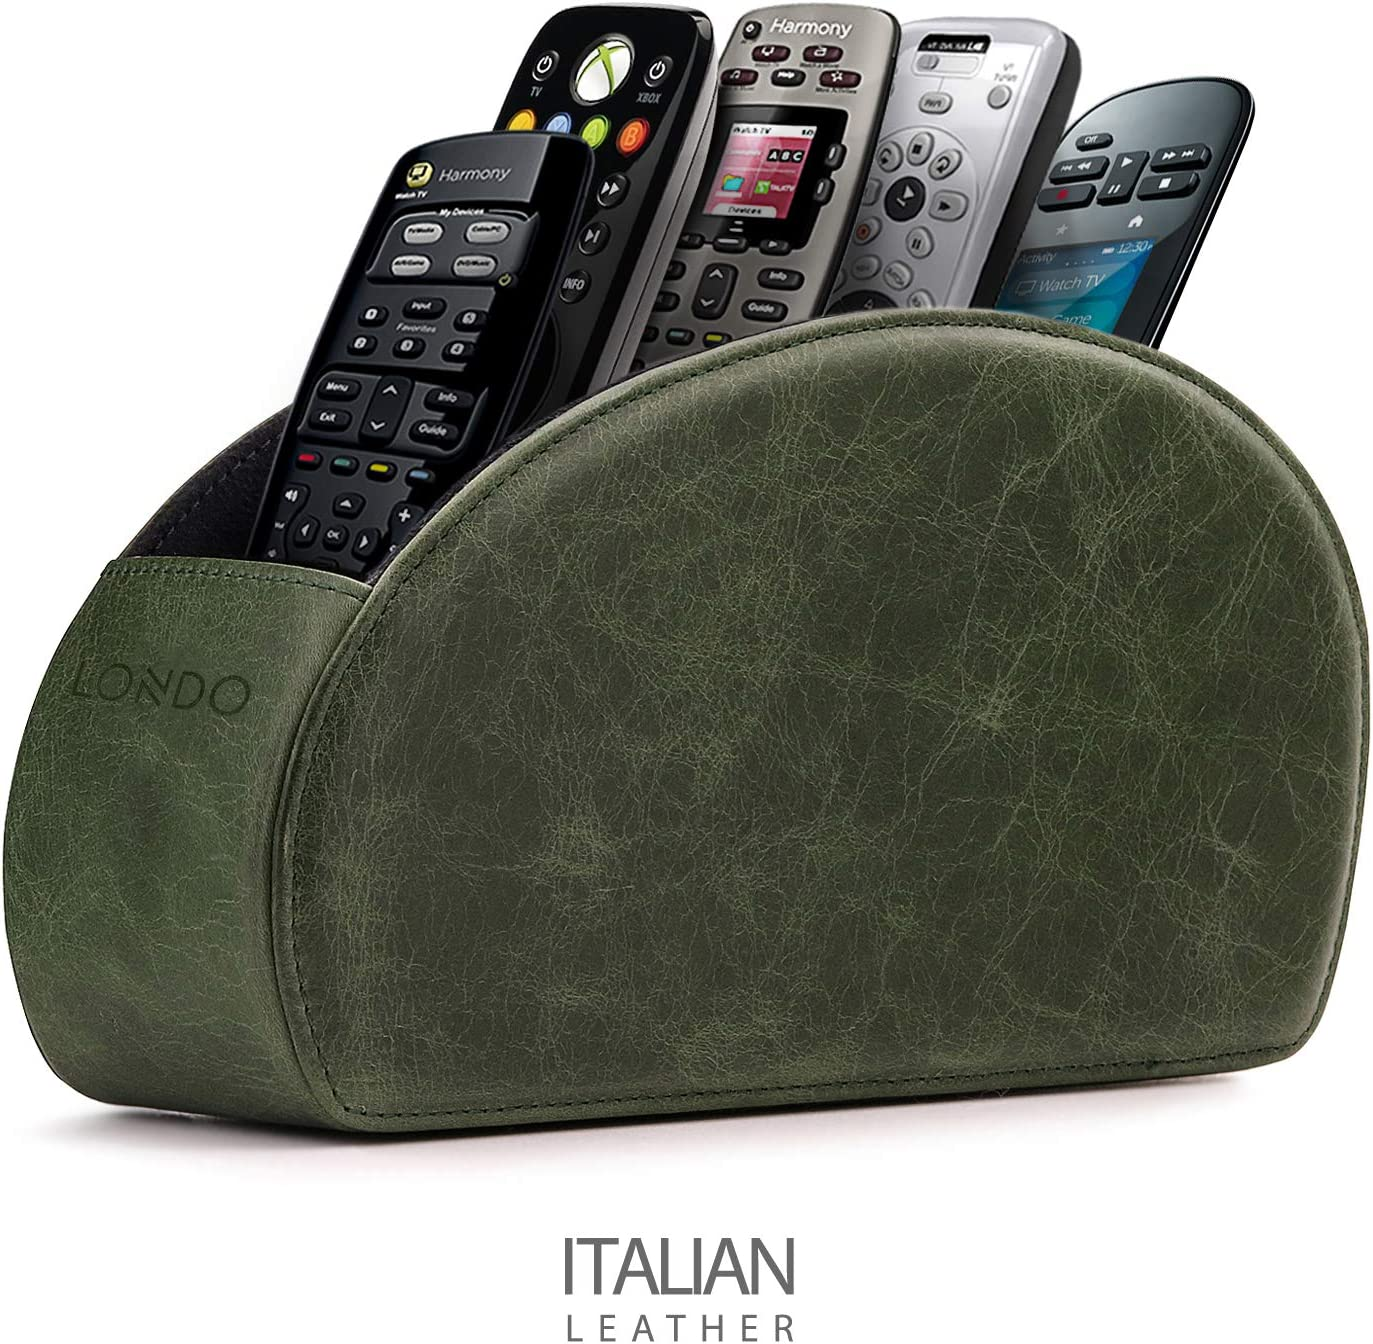 Londo Remote Controller Holder Organizer Store DVD Blu-ray TV Roku or Apple TV Remotes - Italian Genuine Leather with Suede Lining Living or Bedroom Storage – Green